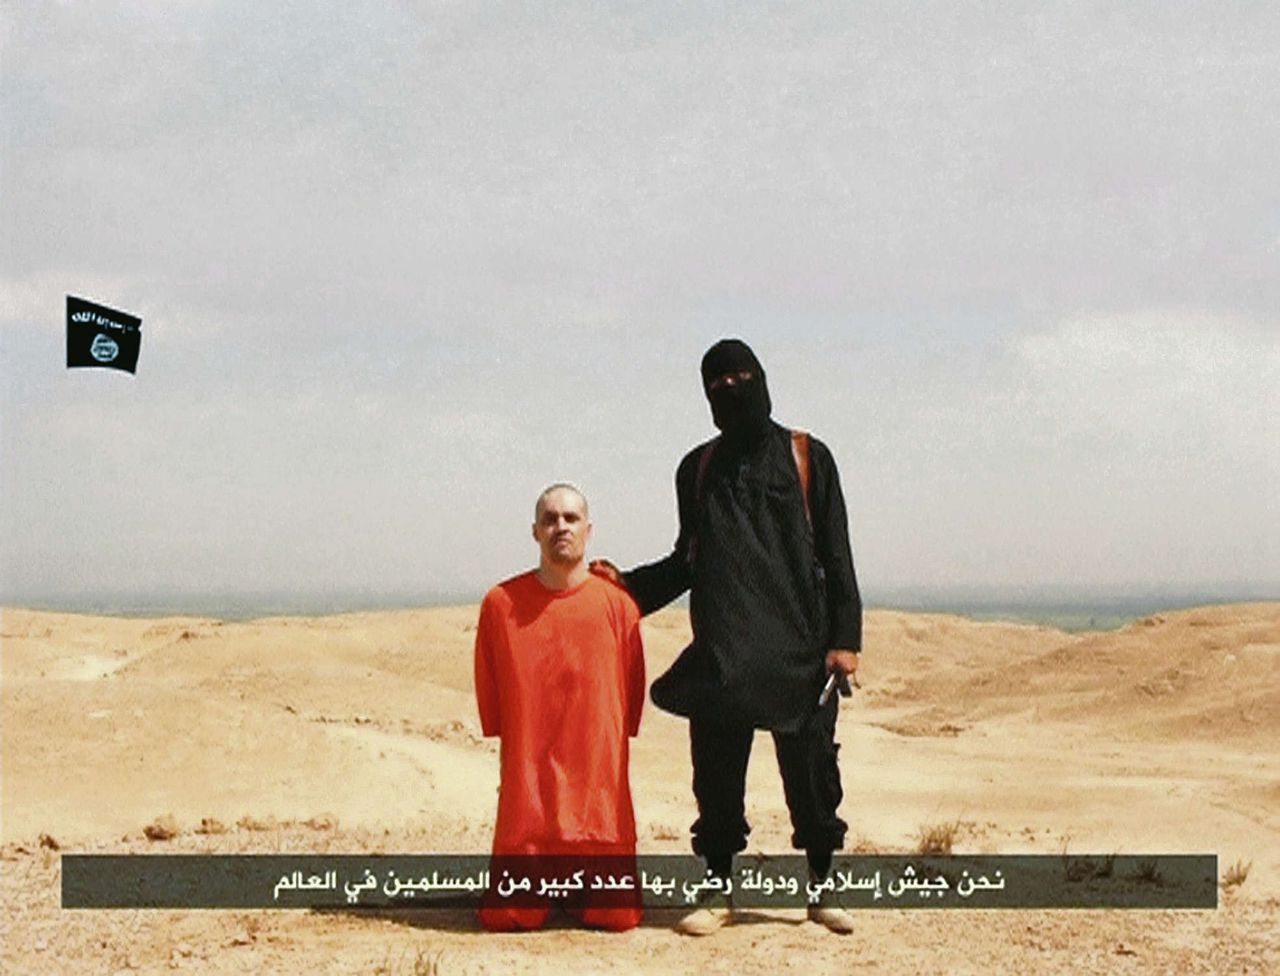 James Foley en zijn beul, fragment uit de video die gisteren via sociale media werd verspreid.